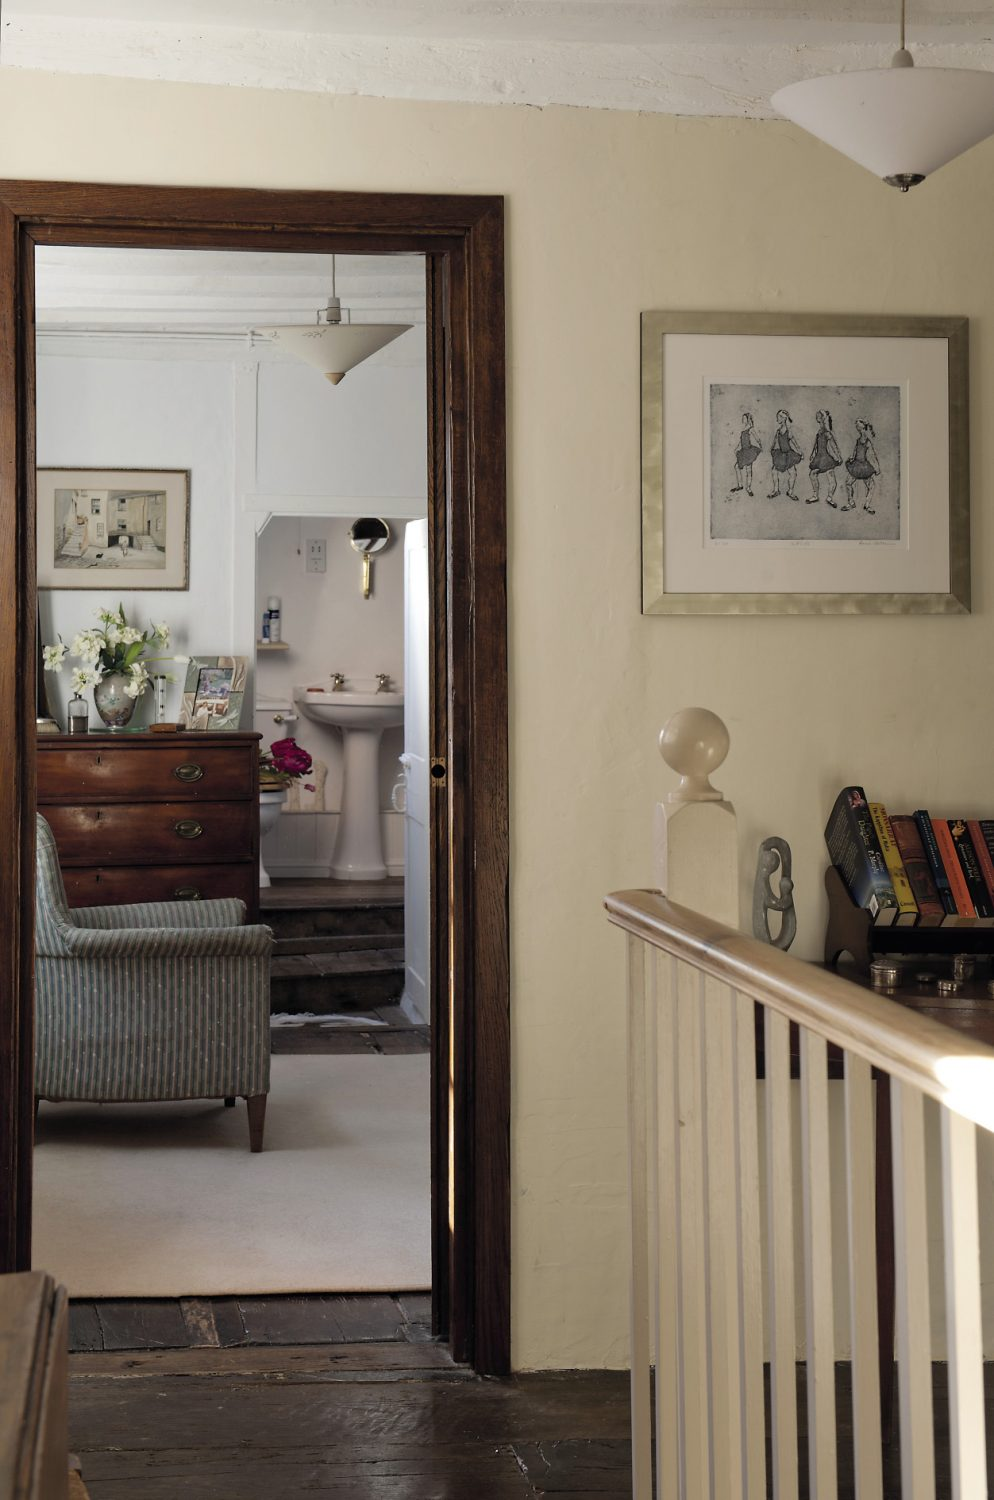 An etching of ballerinas by local artist Anne-Catherine Phillips is positioned at the top of the stairs up to the landing